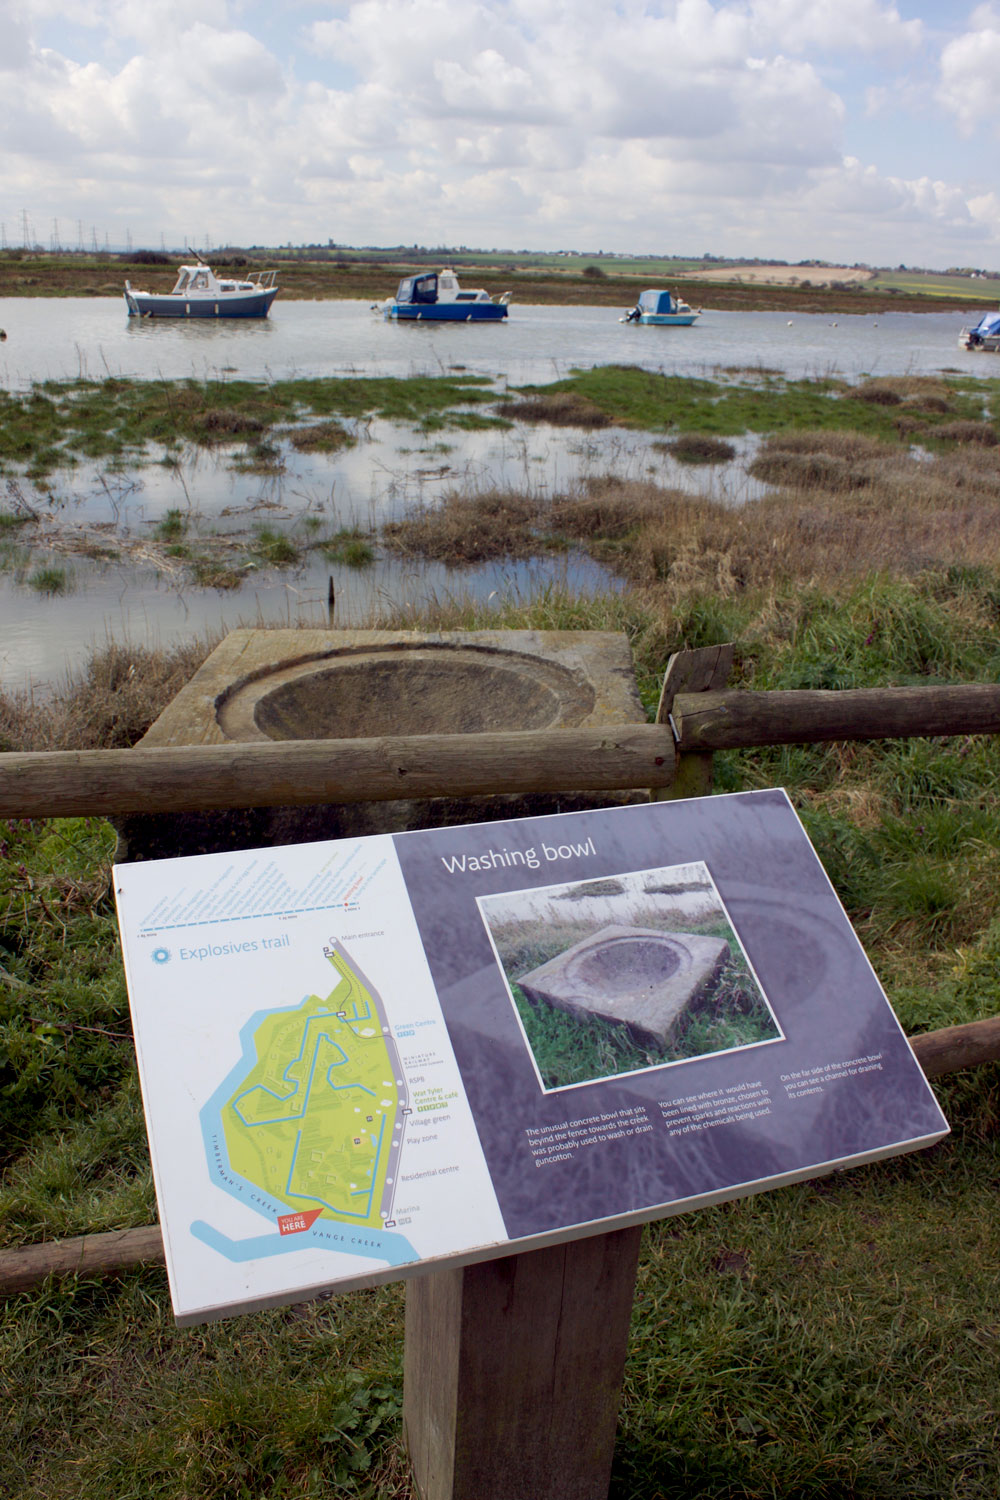 Interpretation signage at Wat Tyler Country Park Marina – image courtesy Dotco